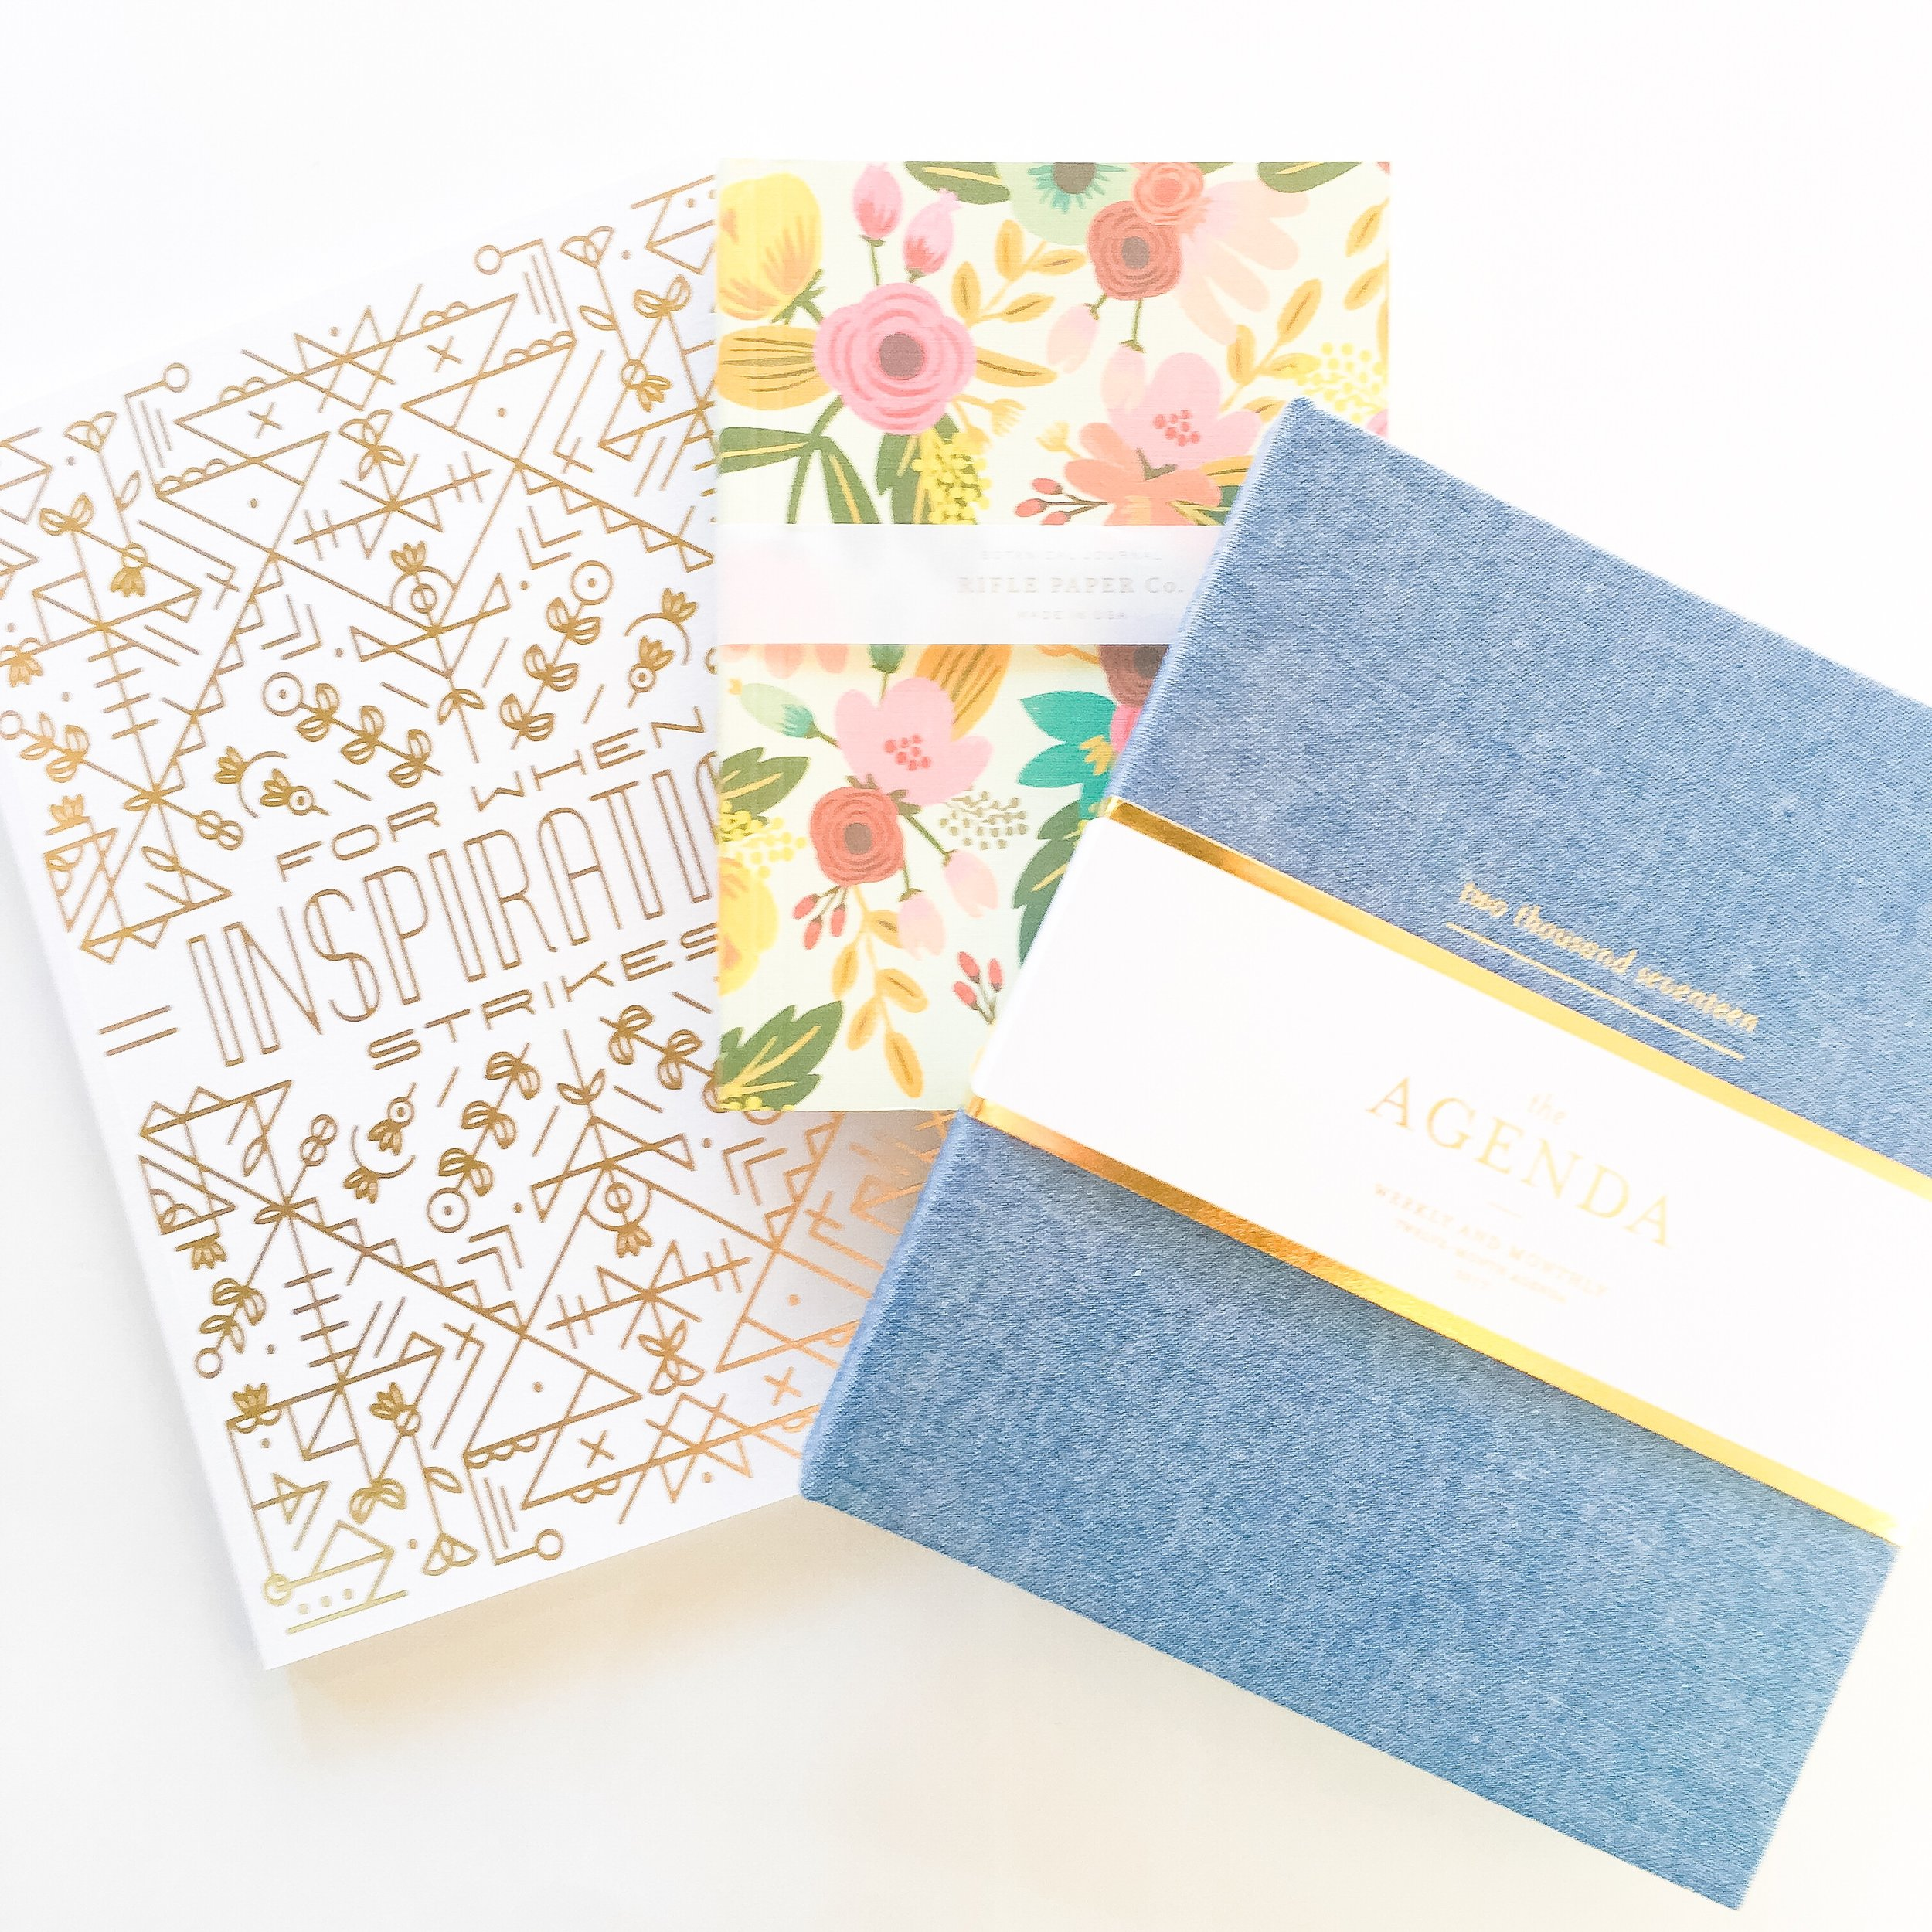 20% OFF Journals & Planners  TUESDAY, DECEMBER 20